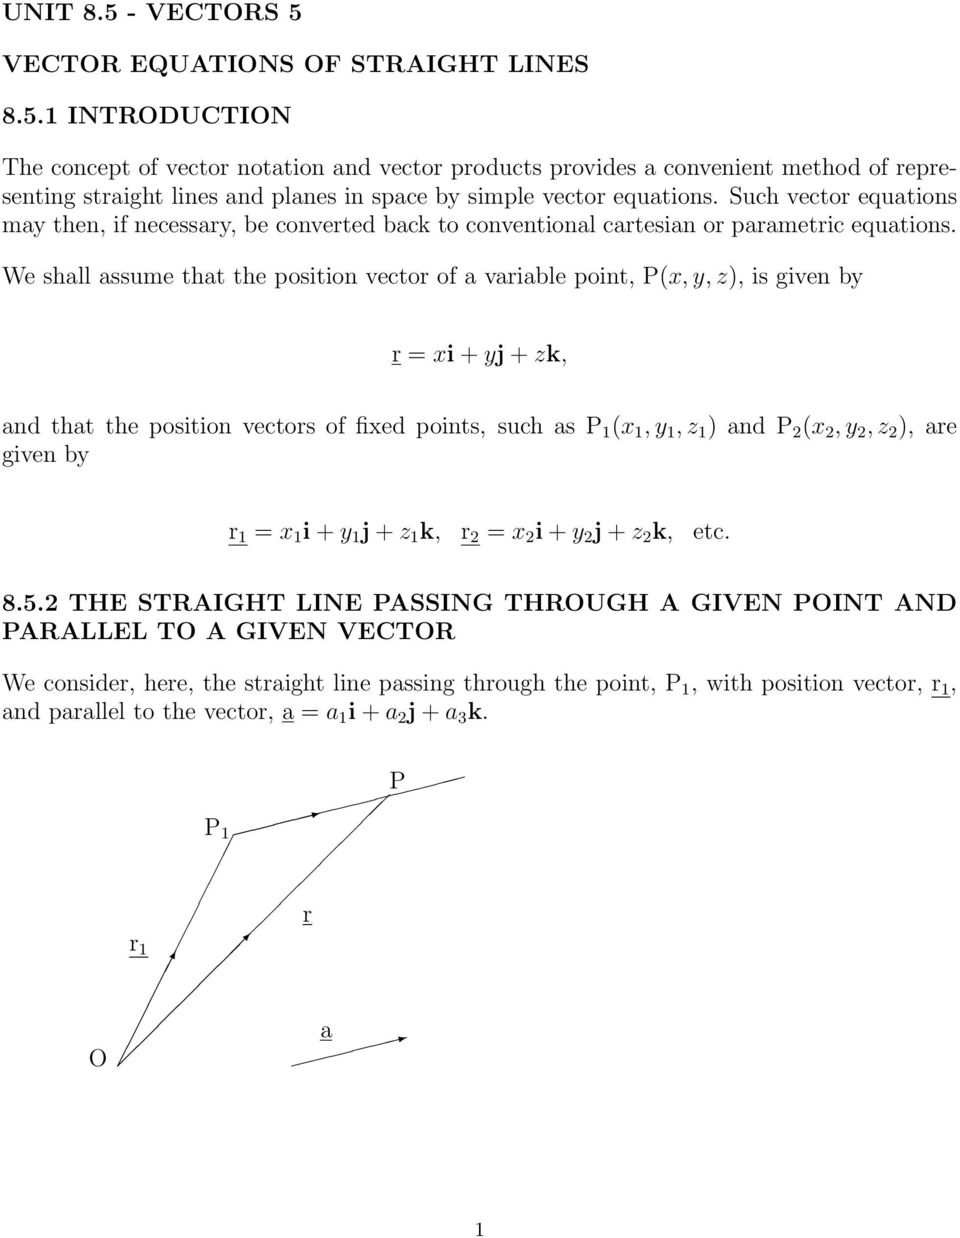 We shall assume that the position vector of a variable point, P(x, y, z), is given by r = xi + yj + zk, and that the position vectors of fixed points, such as P 1 (x 1, y 1, z 1 ) and P (x, y, z ),